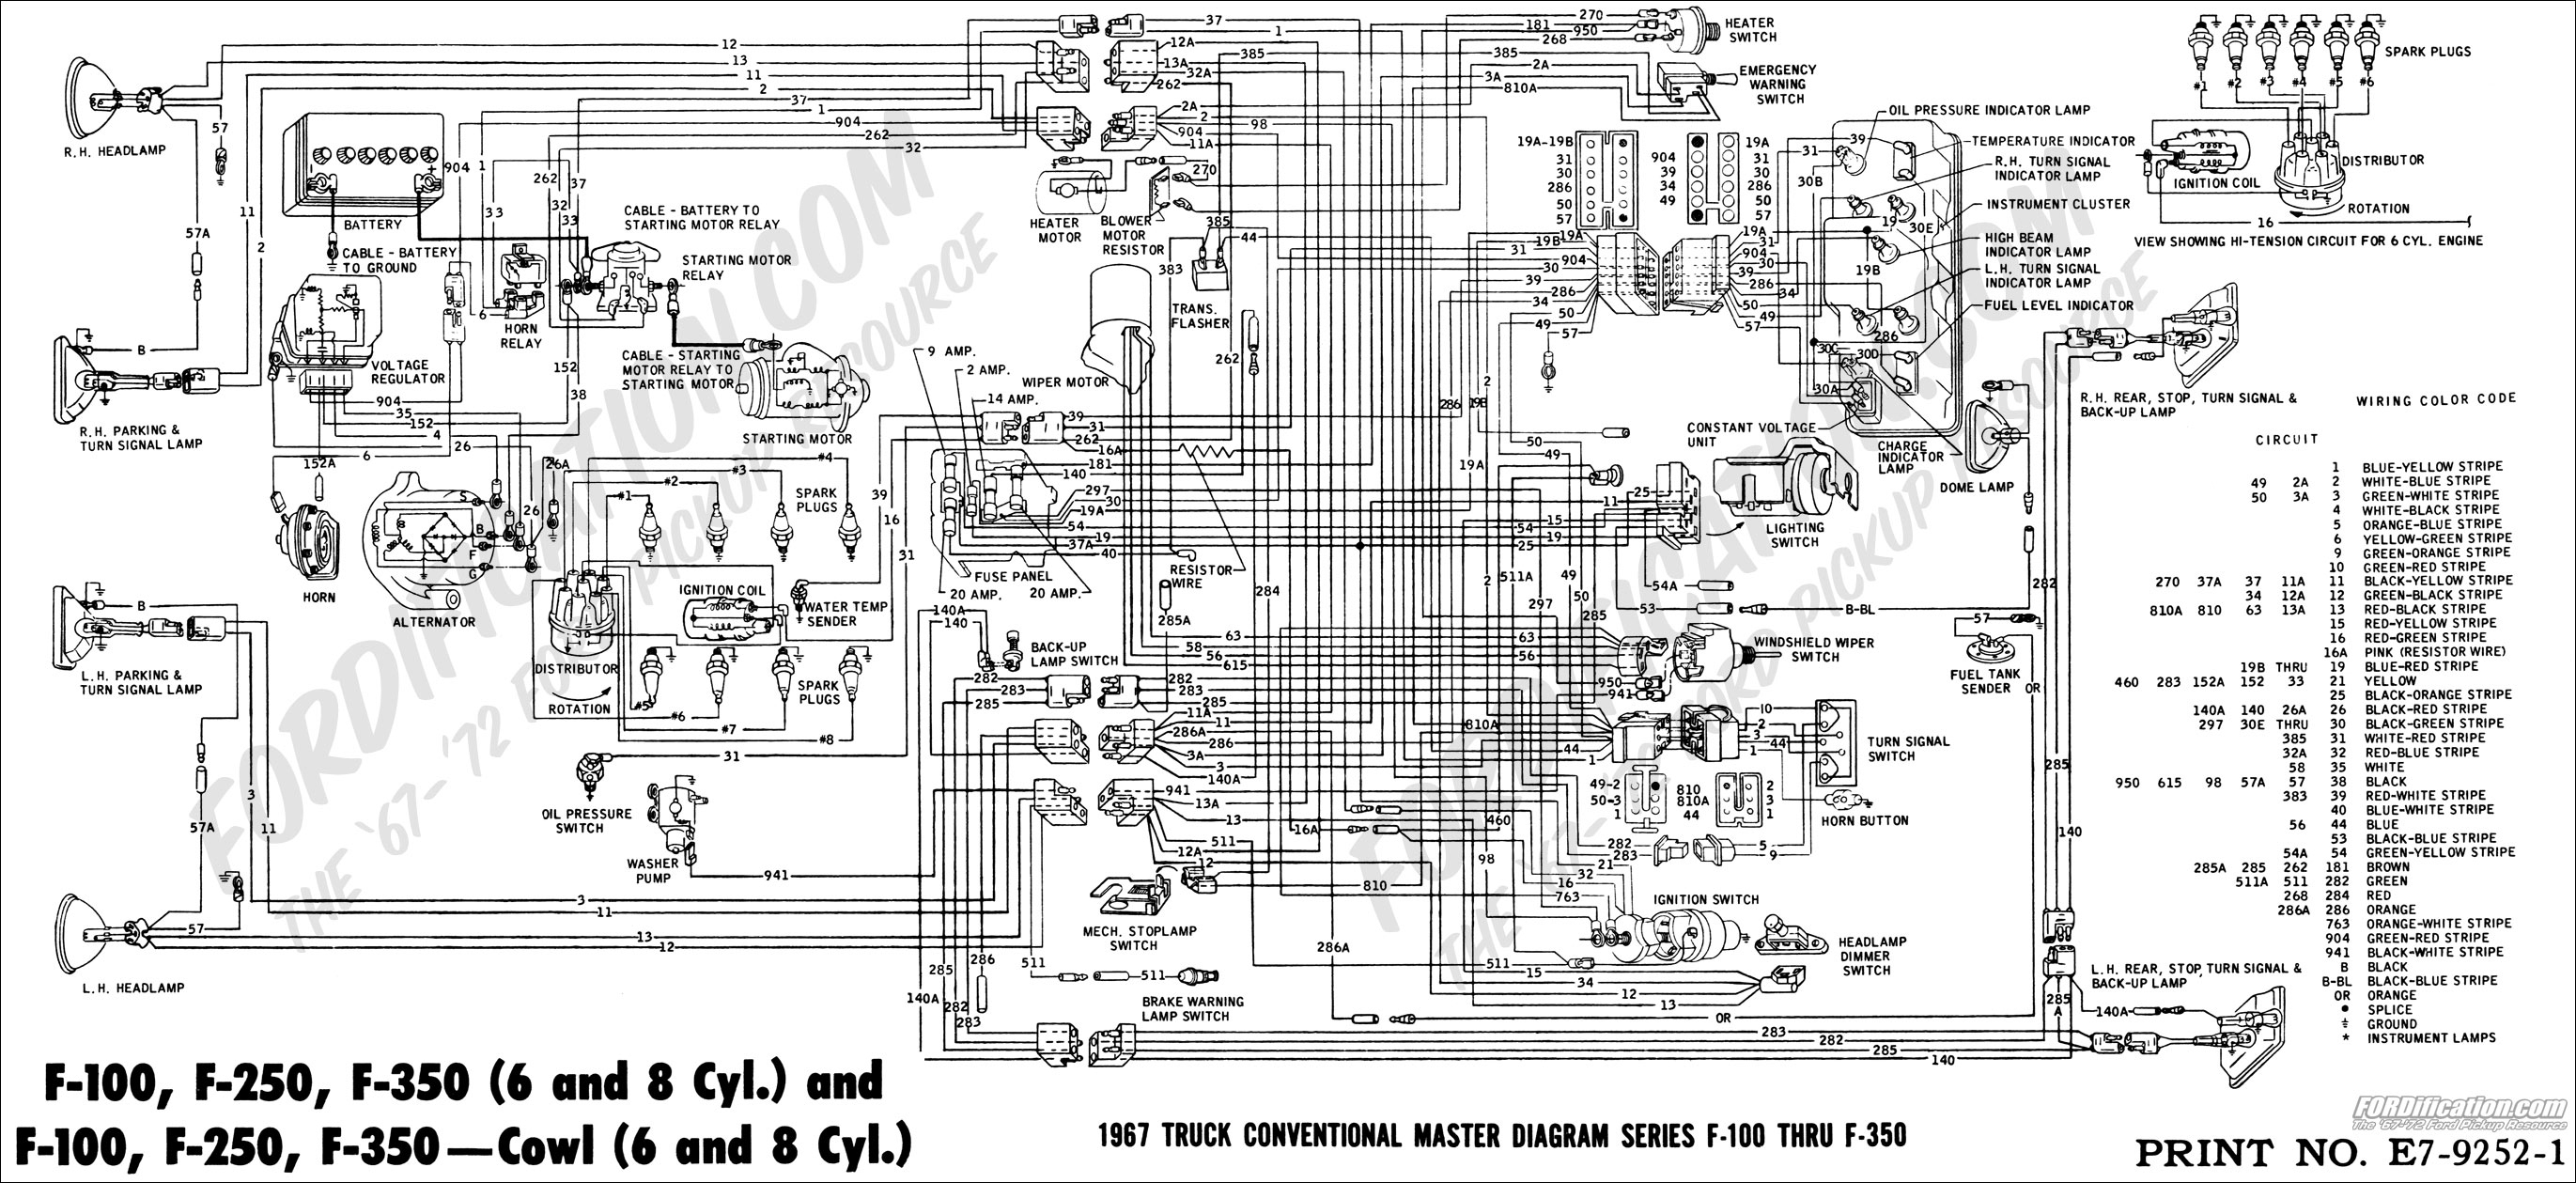 2001 Ford F350 Trailer Wiring Diagram